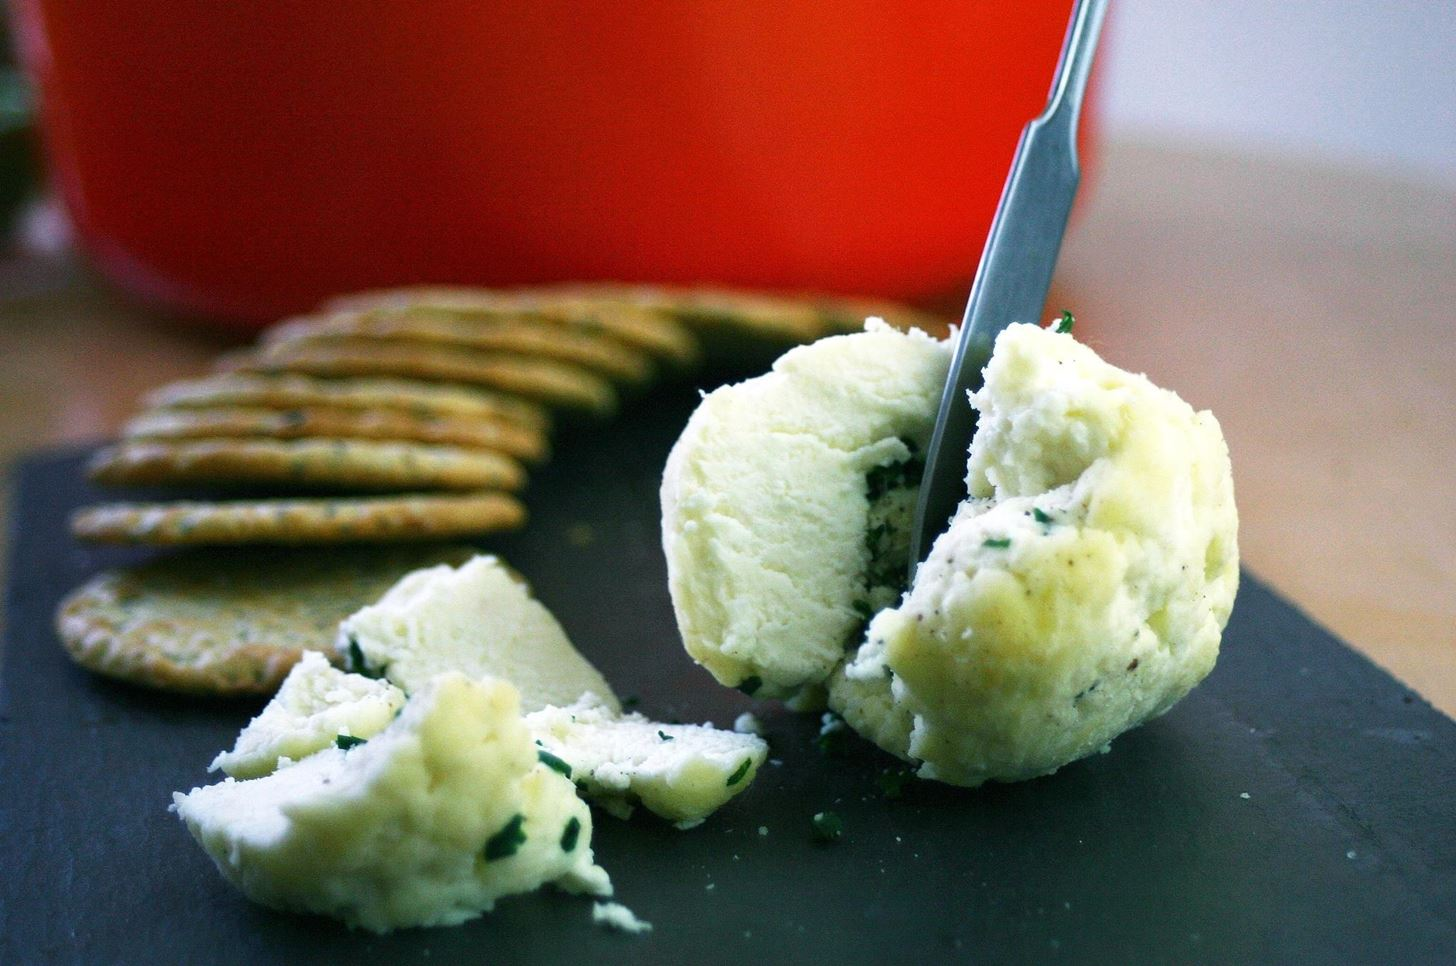 The Easiest Way to Make Quick Cheese at Home (Using Only 3 Common Ingredients)